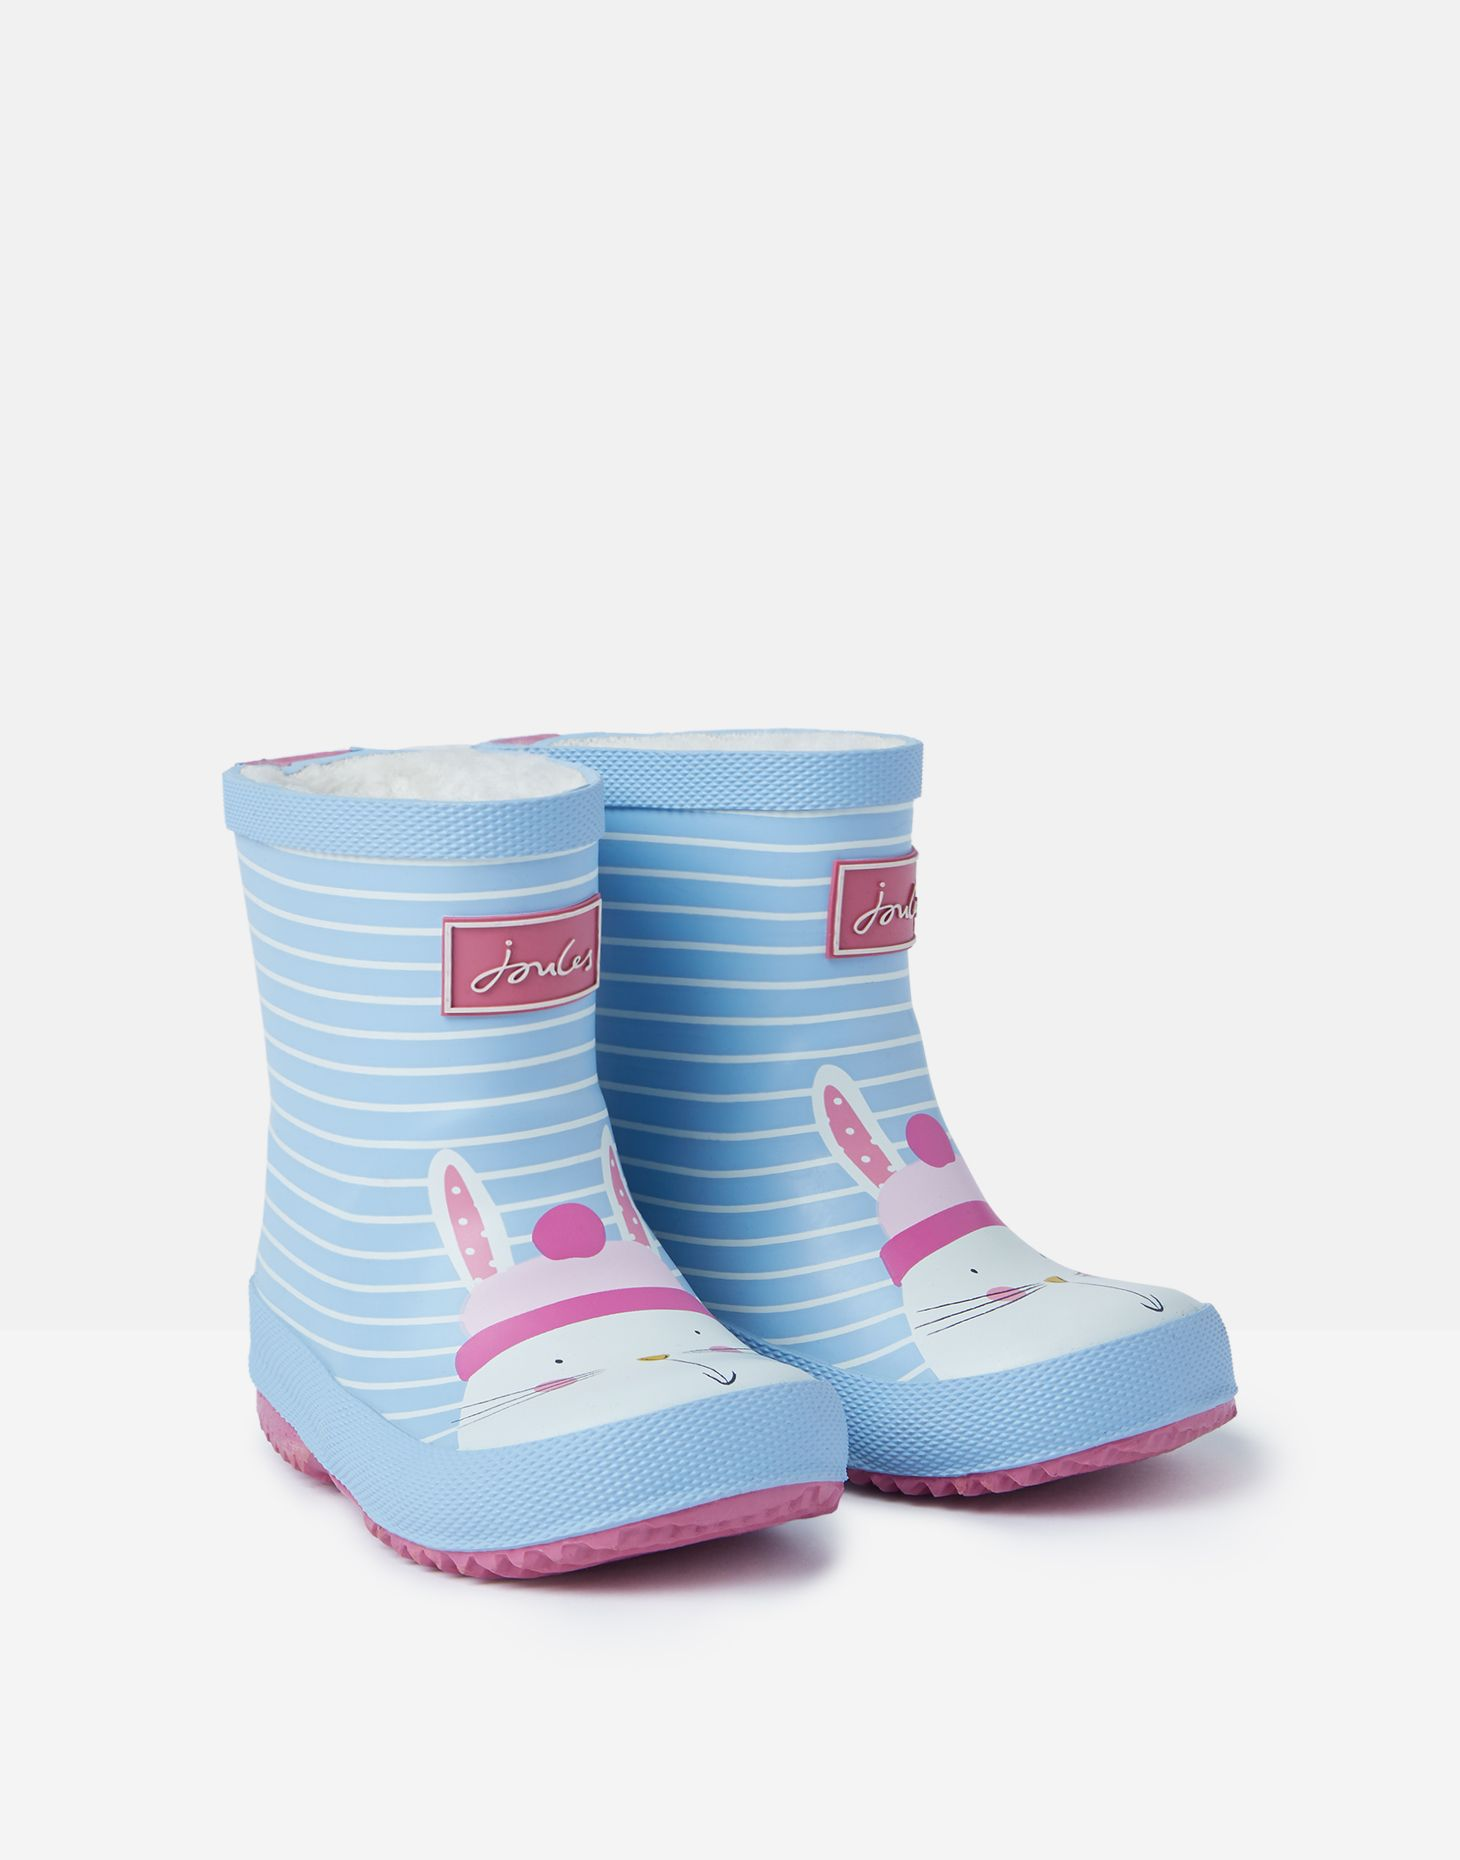 JOULES GIRLS SWIM SHOES IN 3 DESIGNS